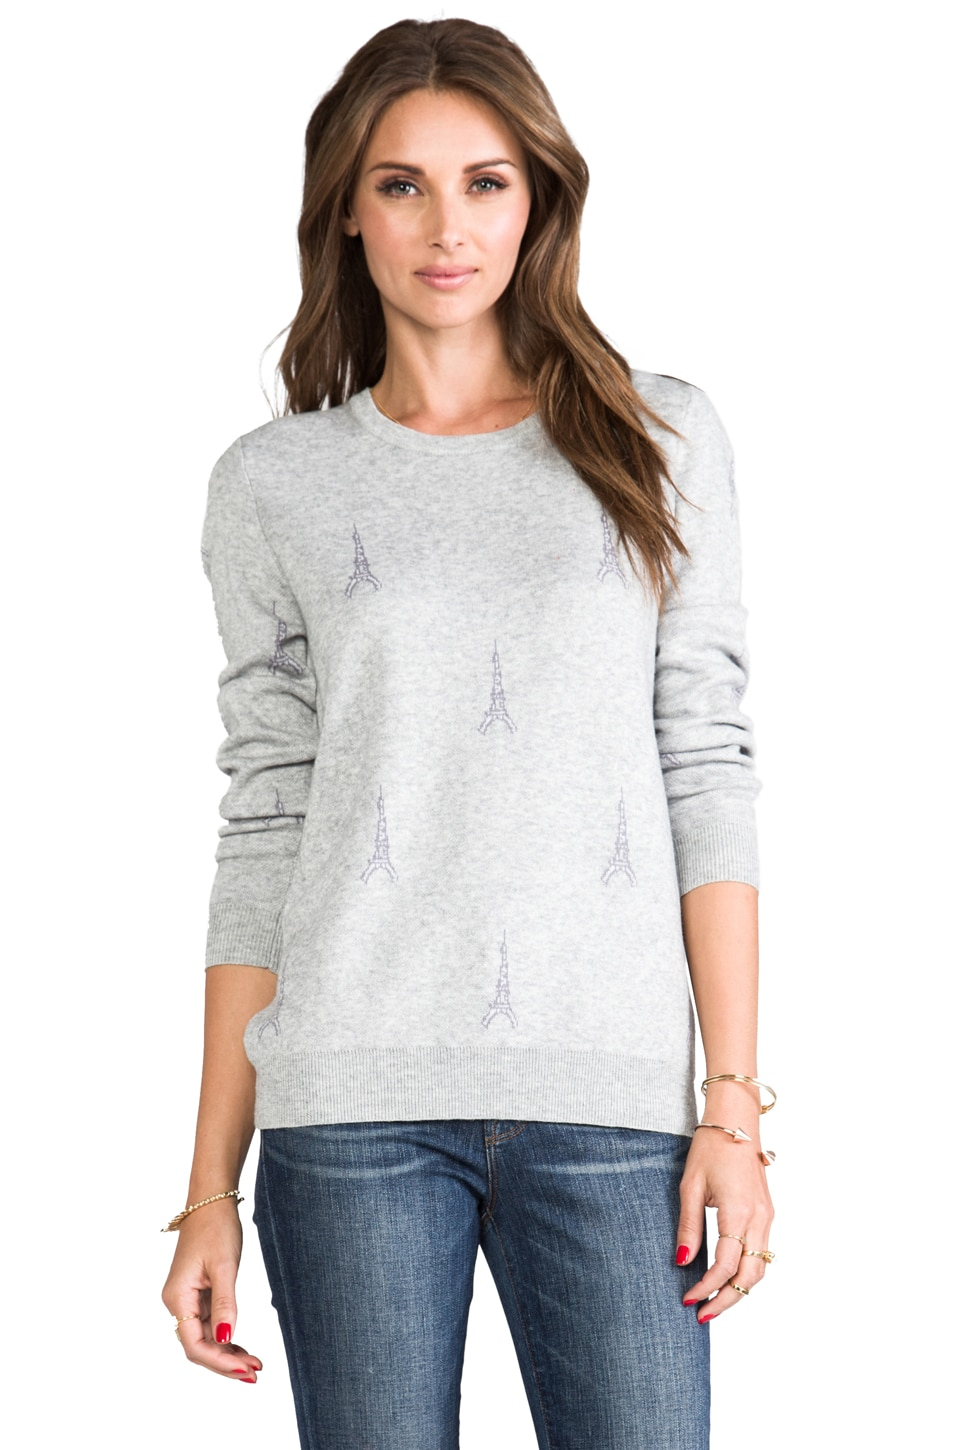 Joie Valera B. Sweater in Light Heather Grey